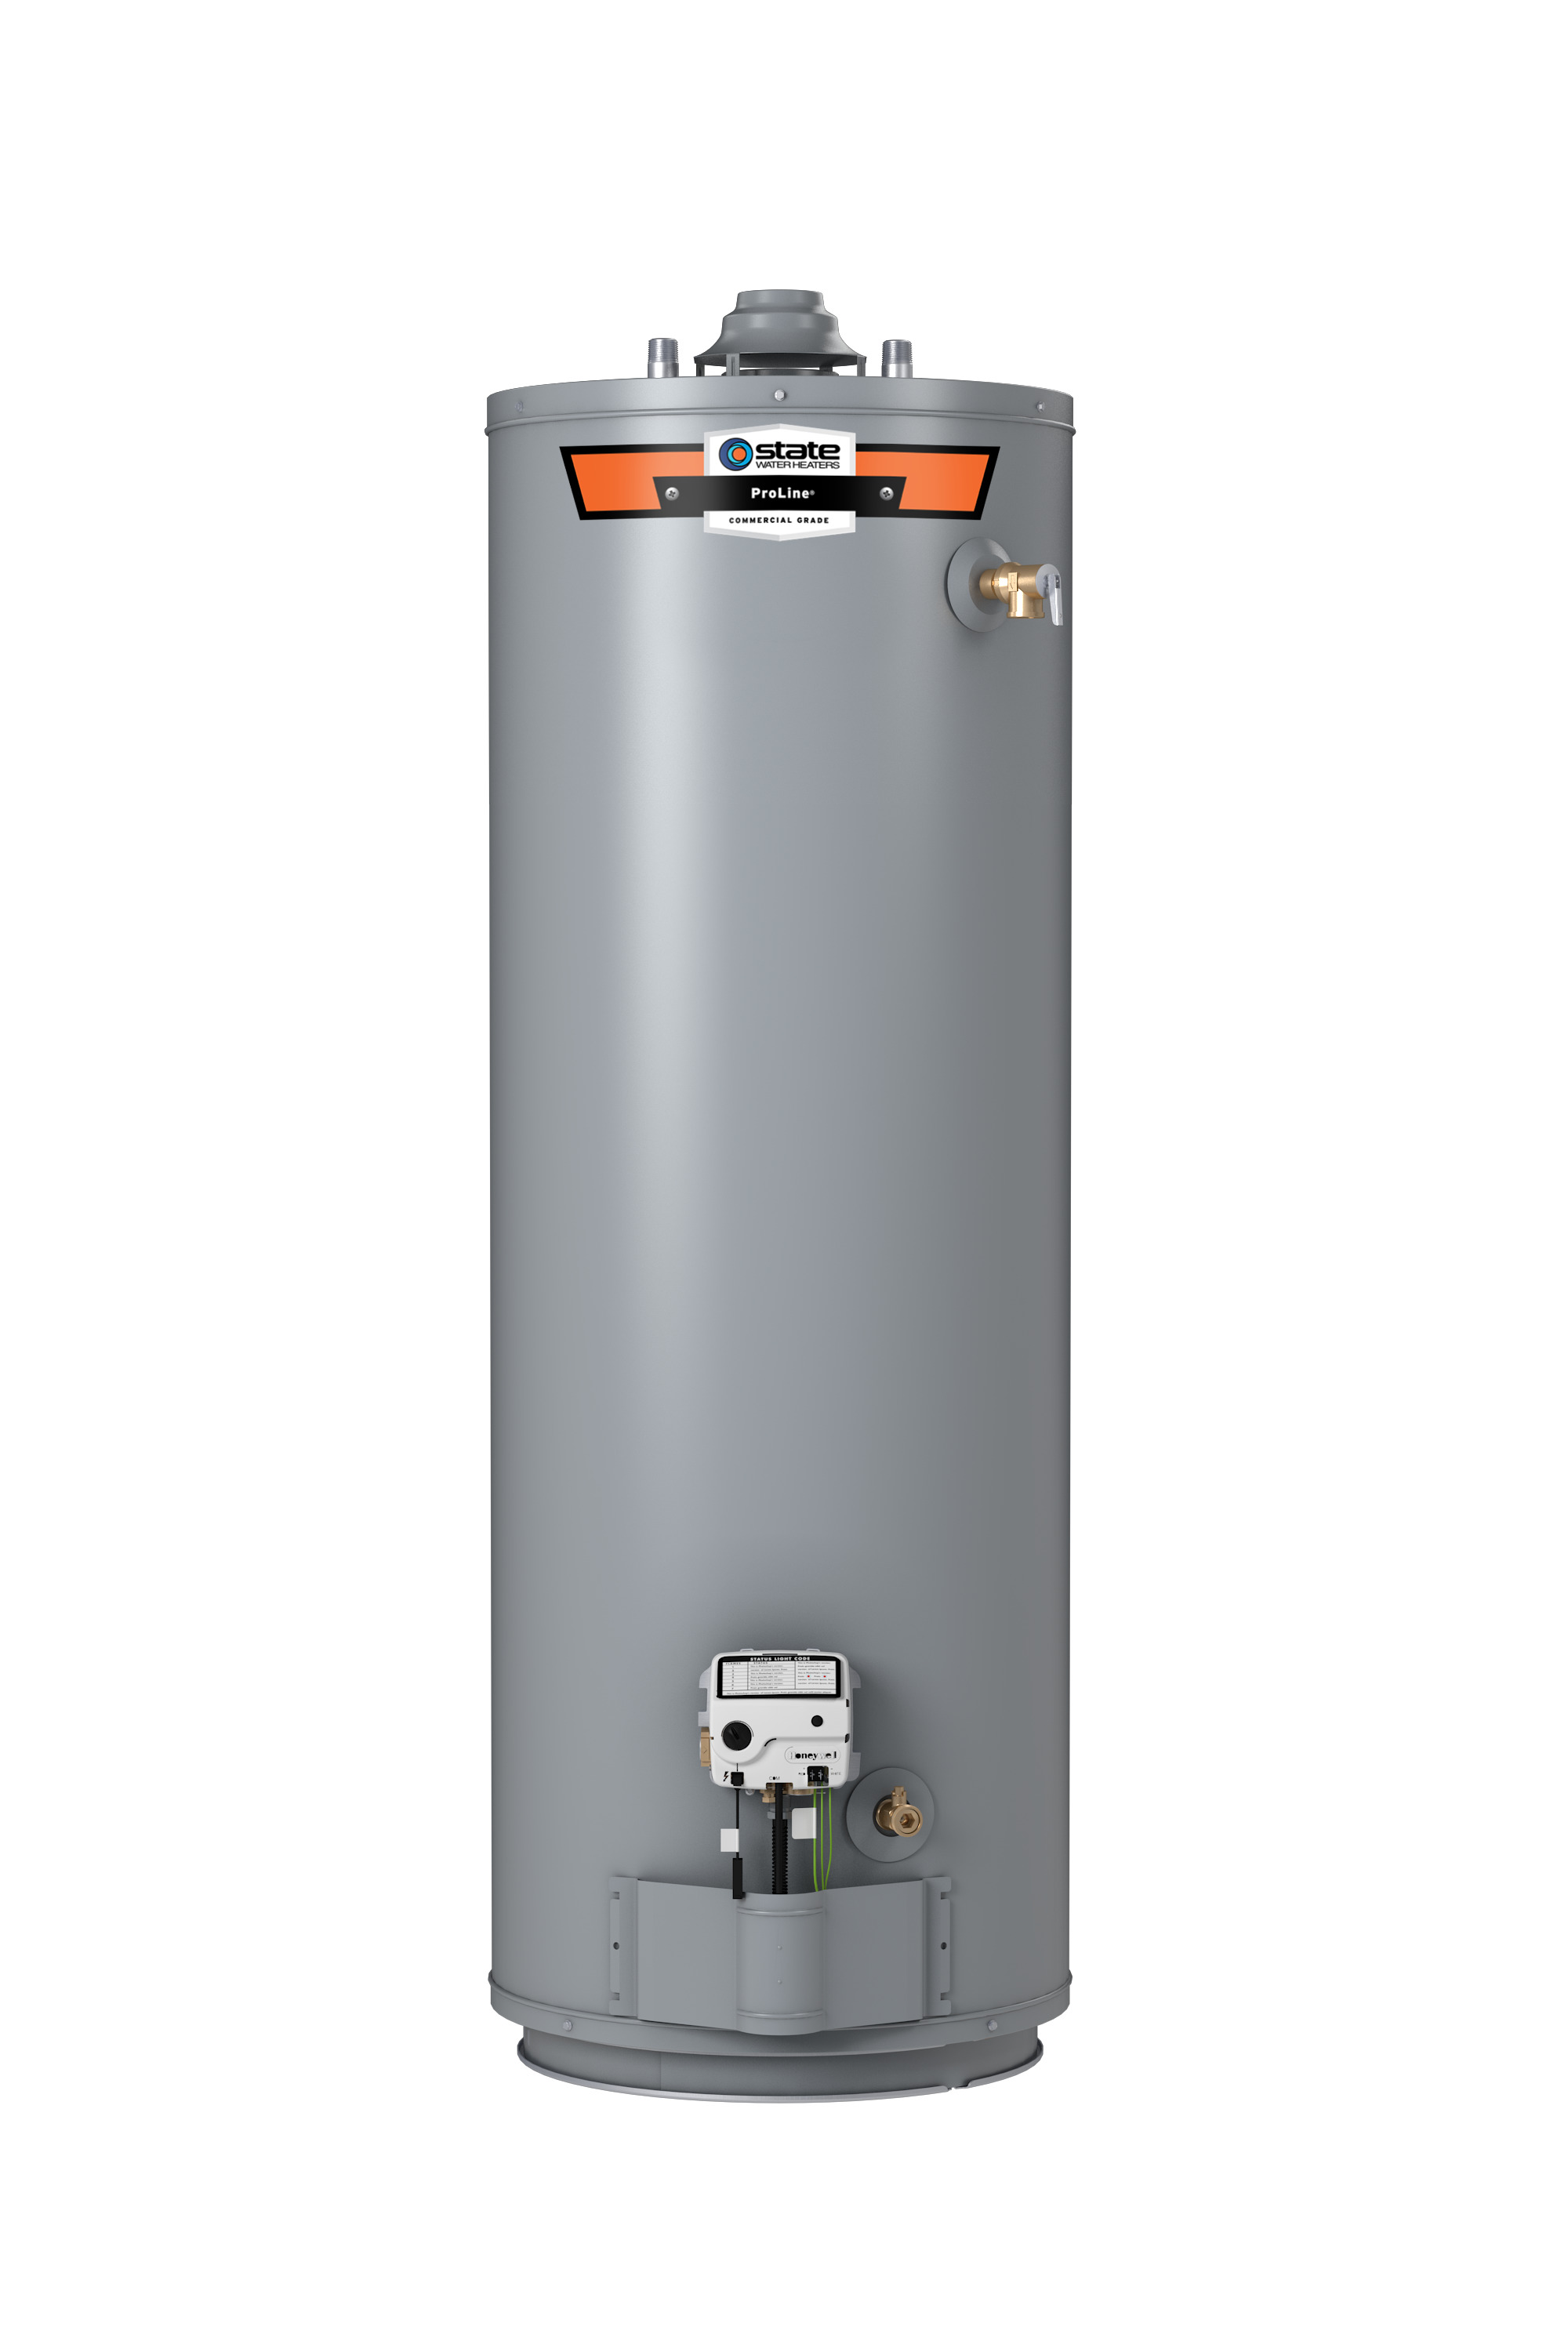 STATE 40 GAL GAS WATER HEATER